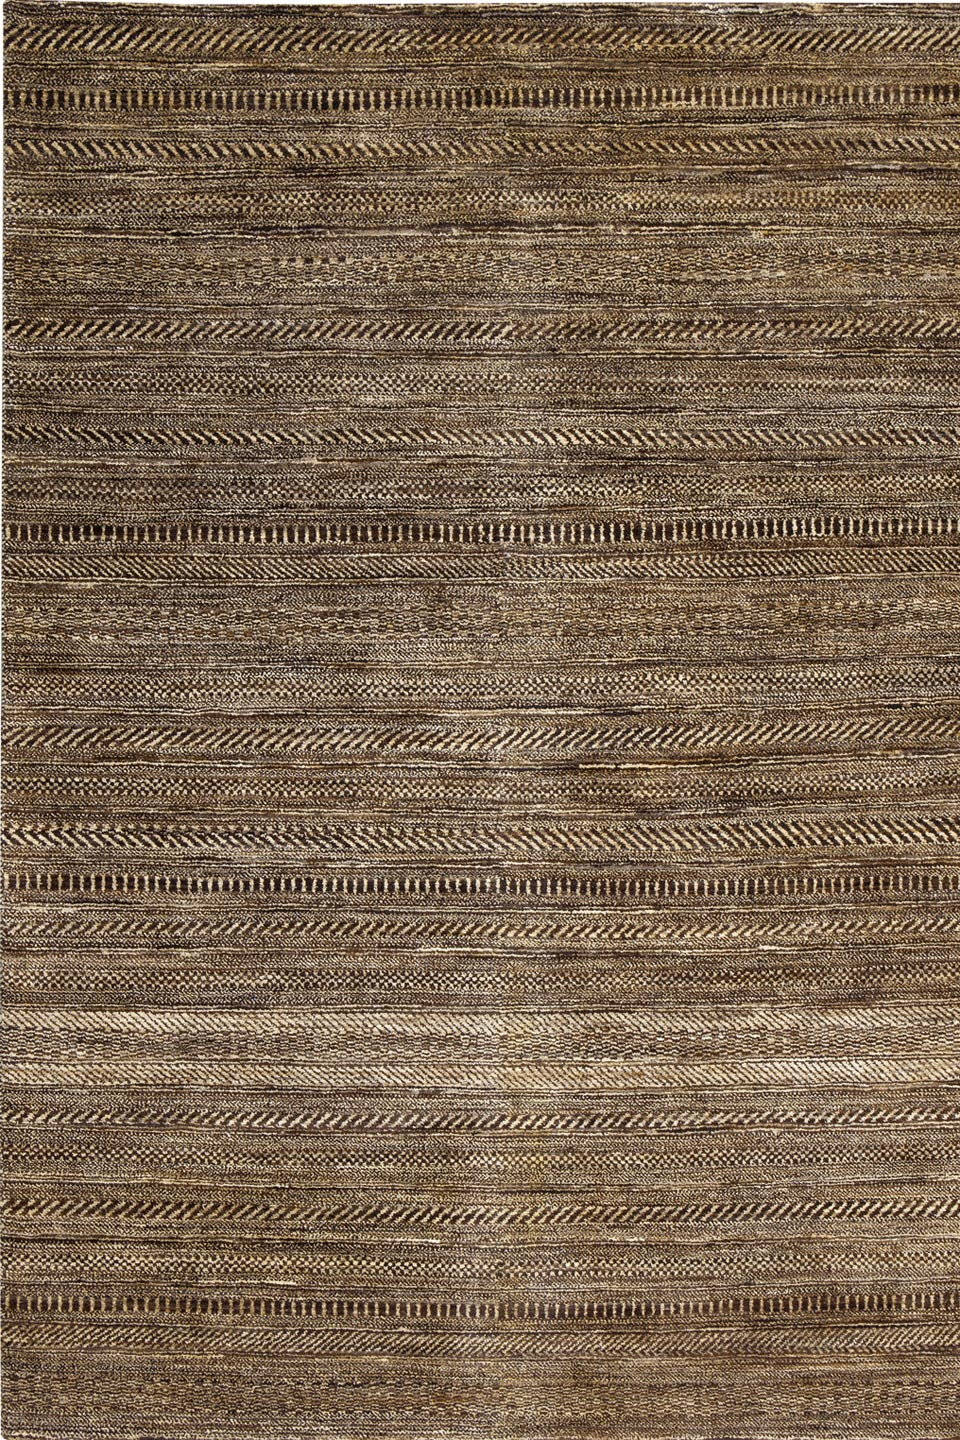 Tapis traditionnel rayures beige et brun fonc ligne pure tapis contemporains fabriqu s la Beaux tapis contemporains